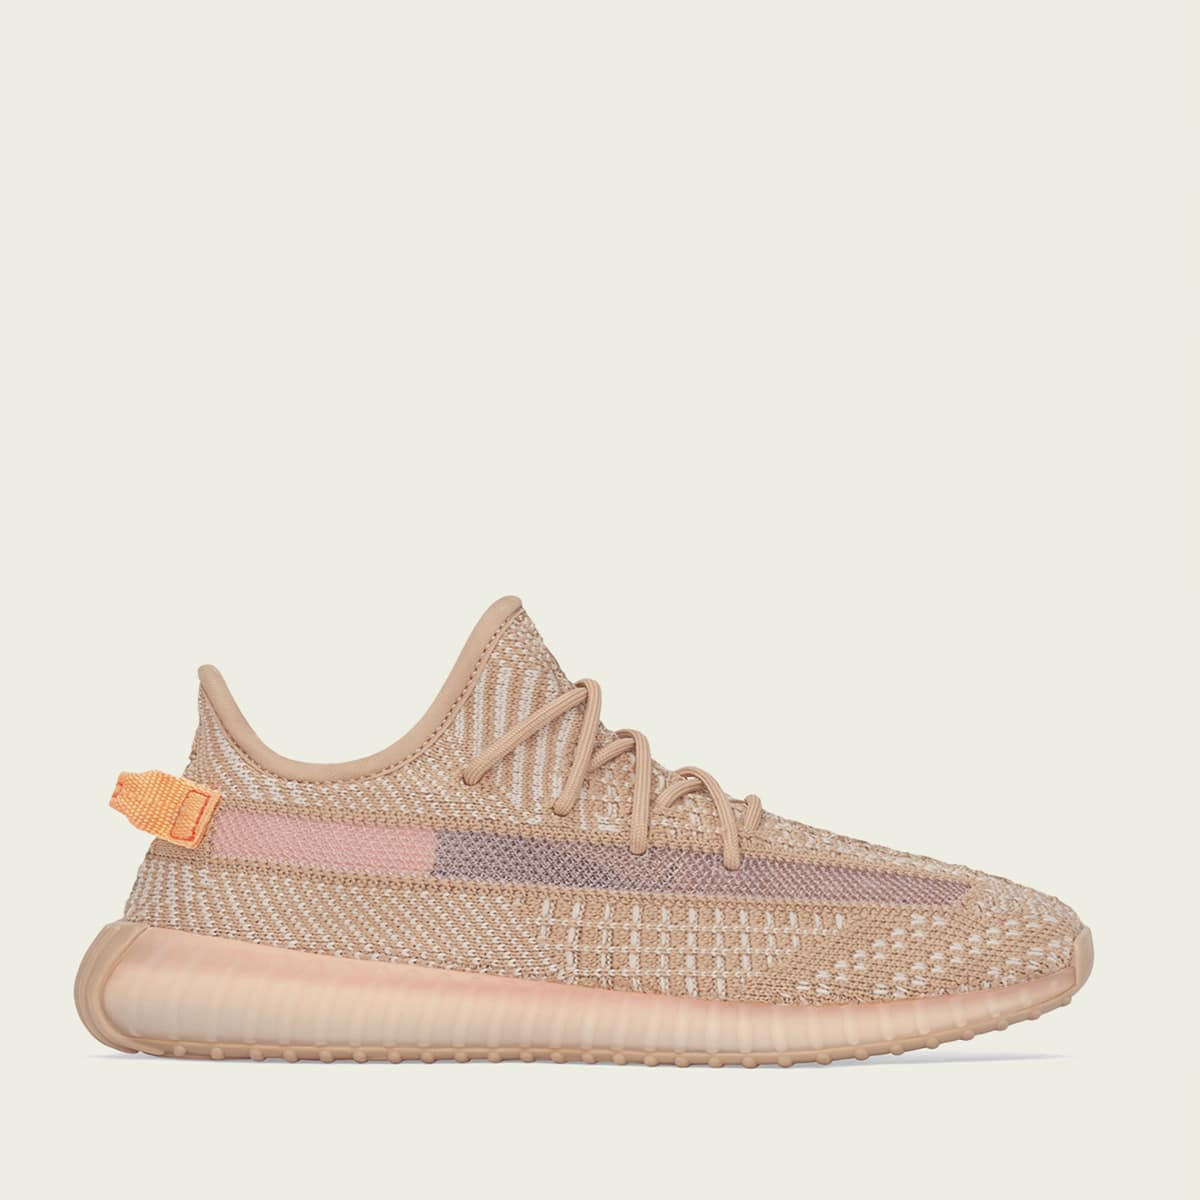 adidas YEEZY BOOST 350 V2 KIDS  PINK 19SS-S_photo_large